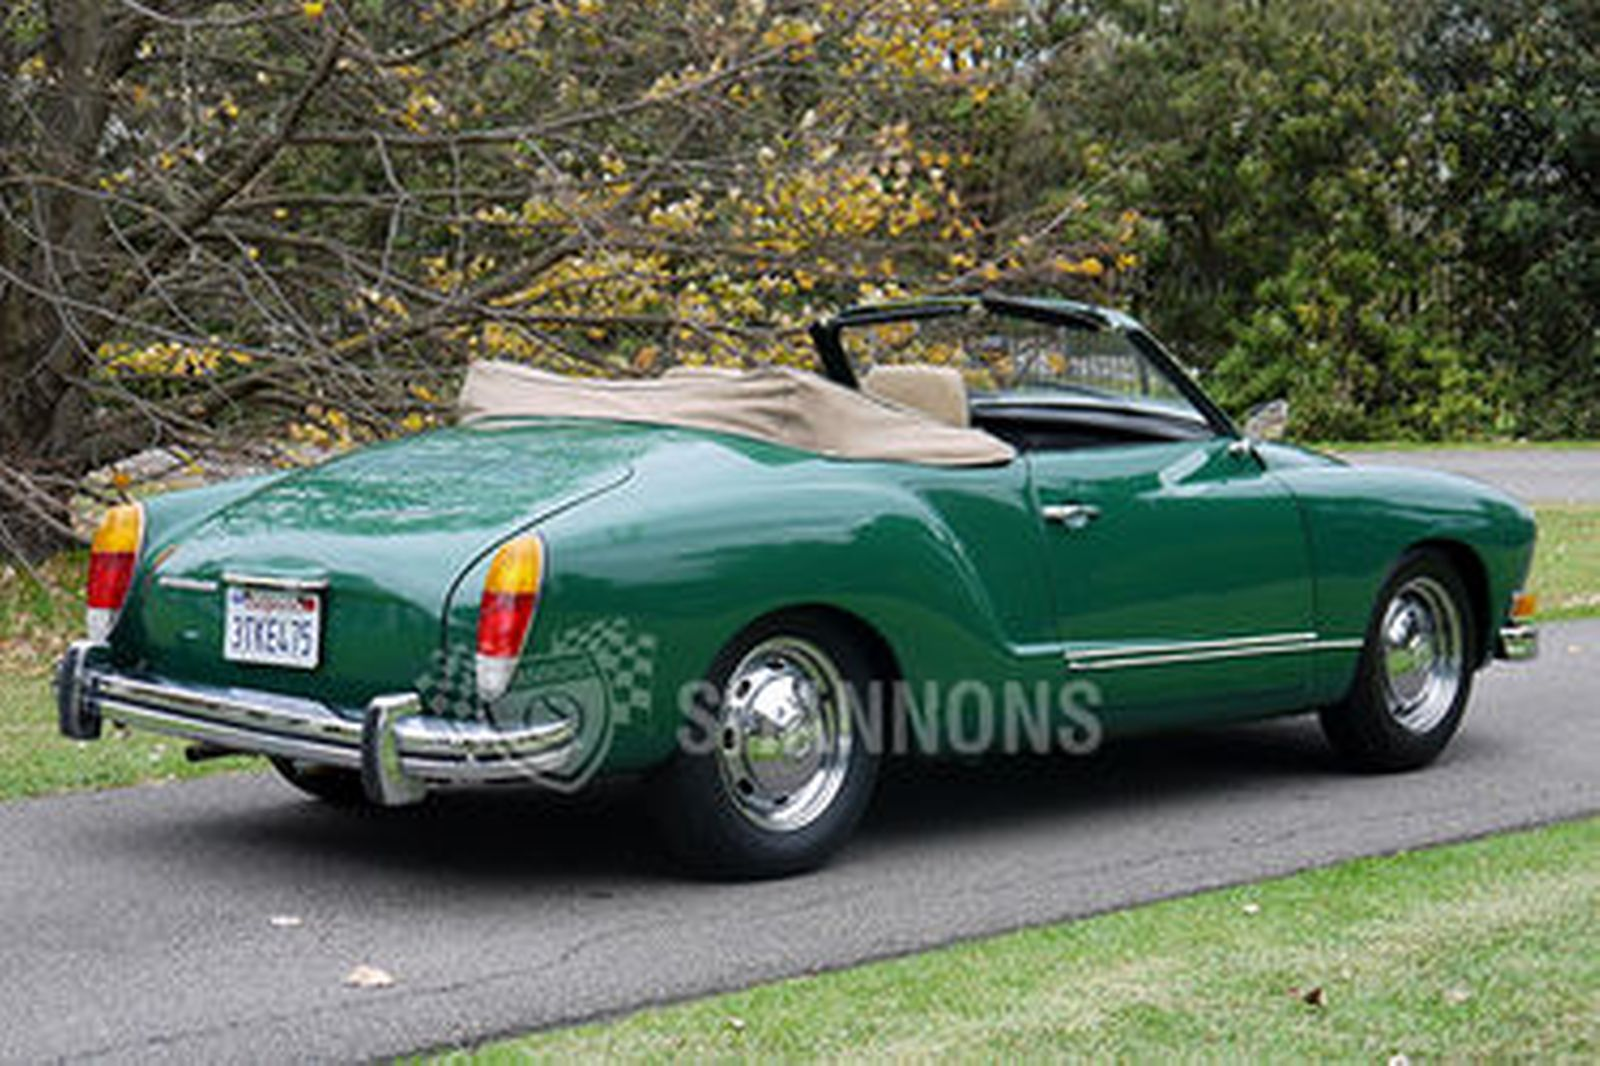 1973-volkswagen-karmann-ghia-convertible-lhd Fuse Box For A House on front door for a house, frame for a house, roof for a house, generator for a house, carpet for a house,